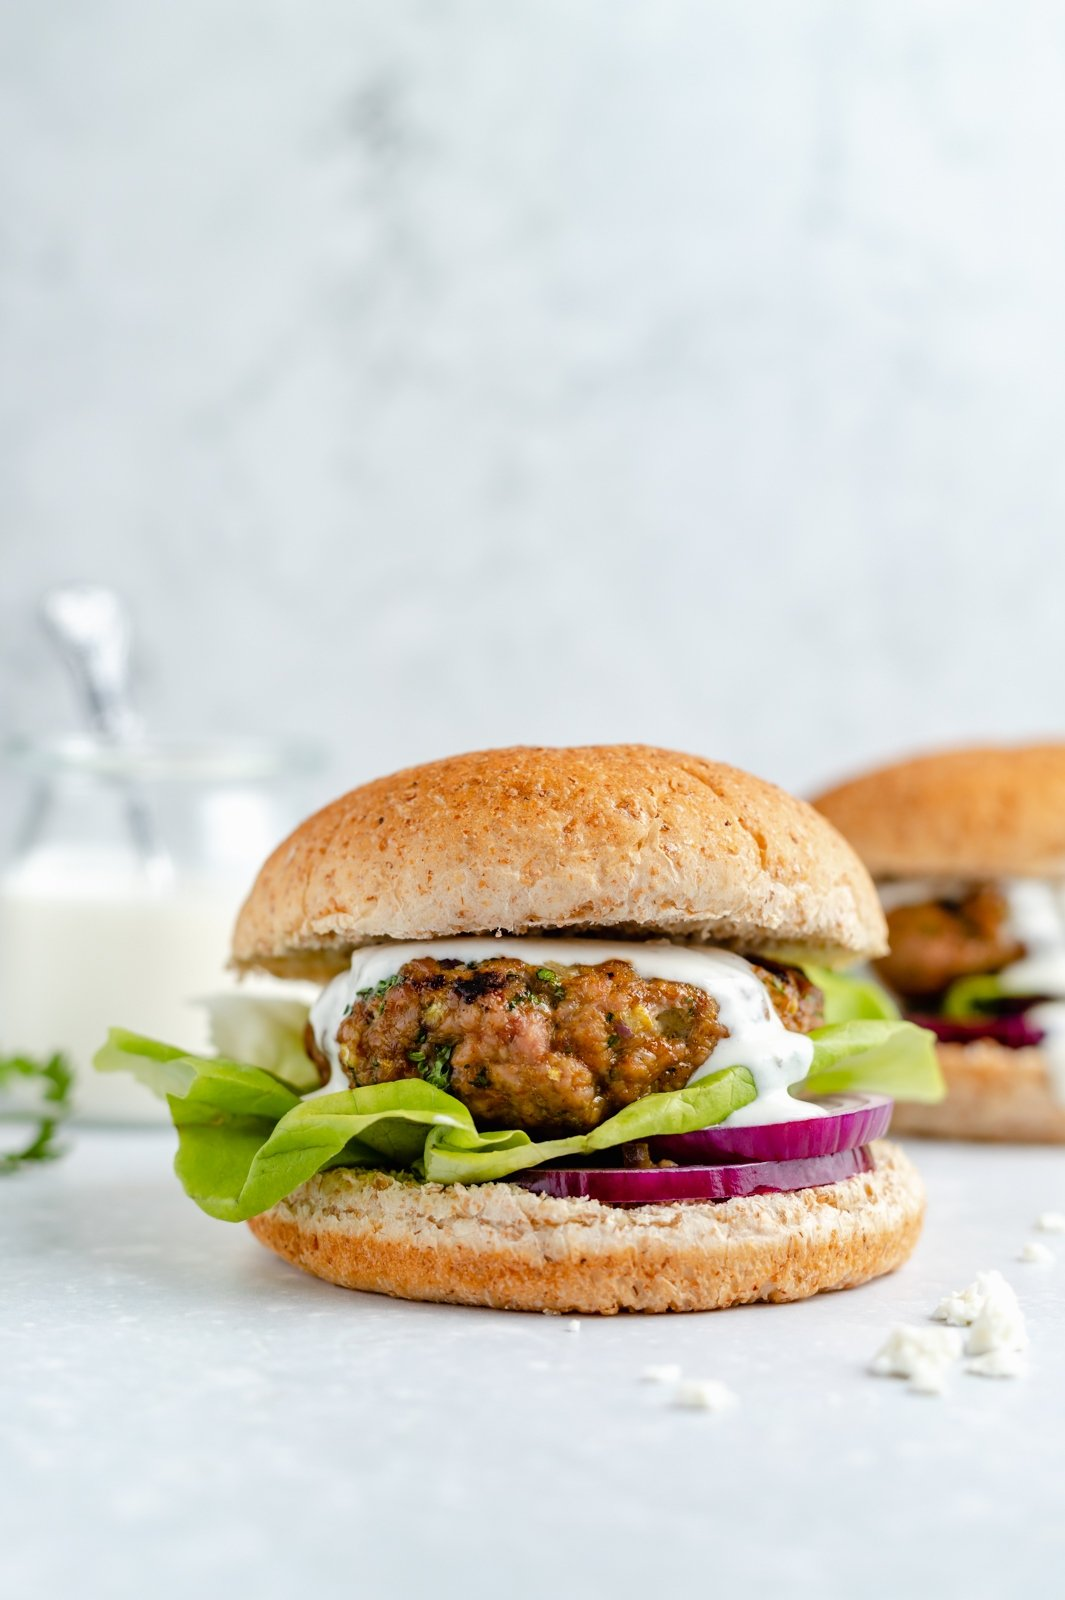 moroccan-inspired turkey burger topped with feta sauce